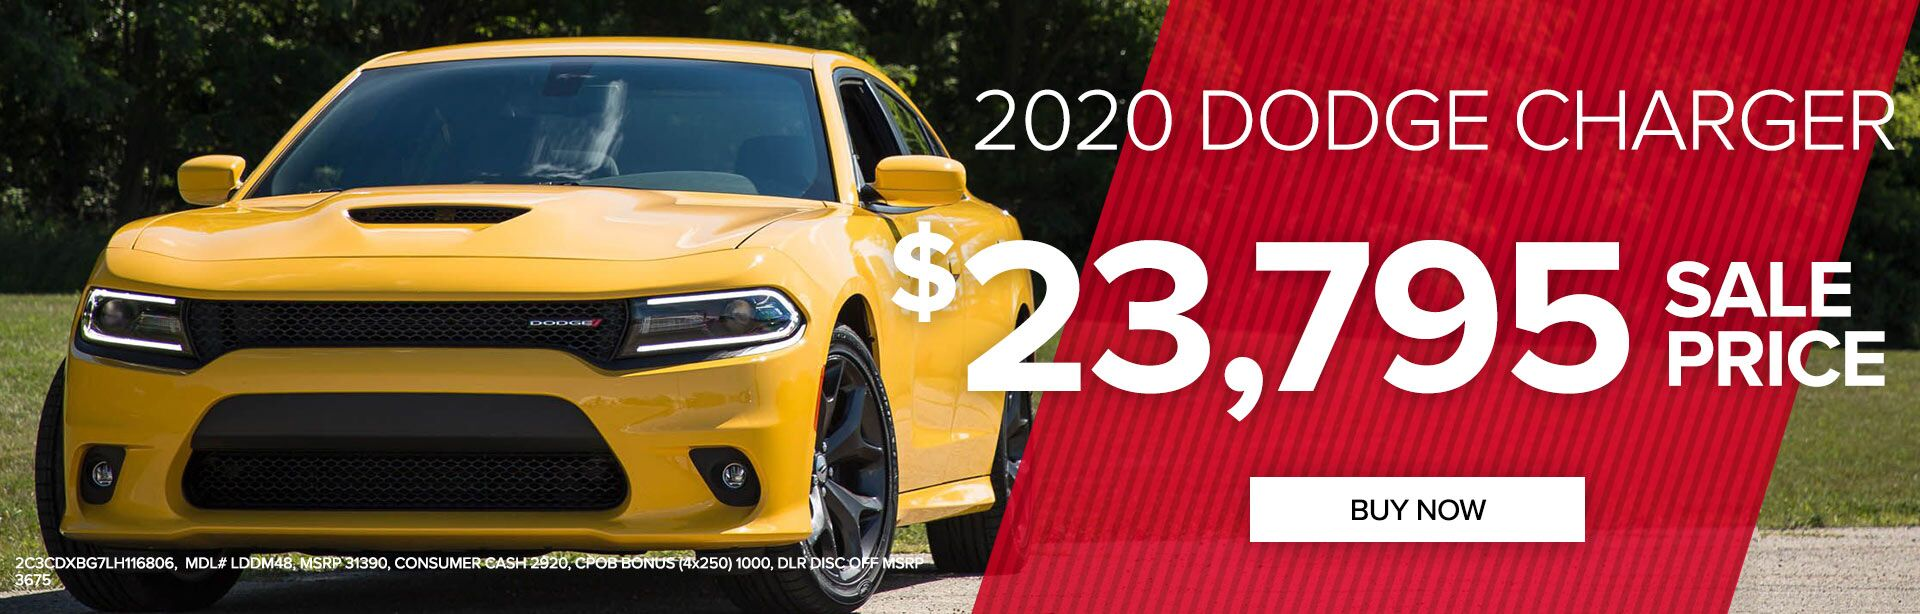 2020 Dodge Charger $23,795 Sale Price